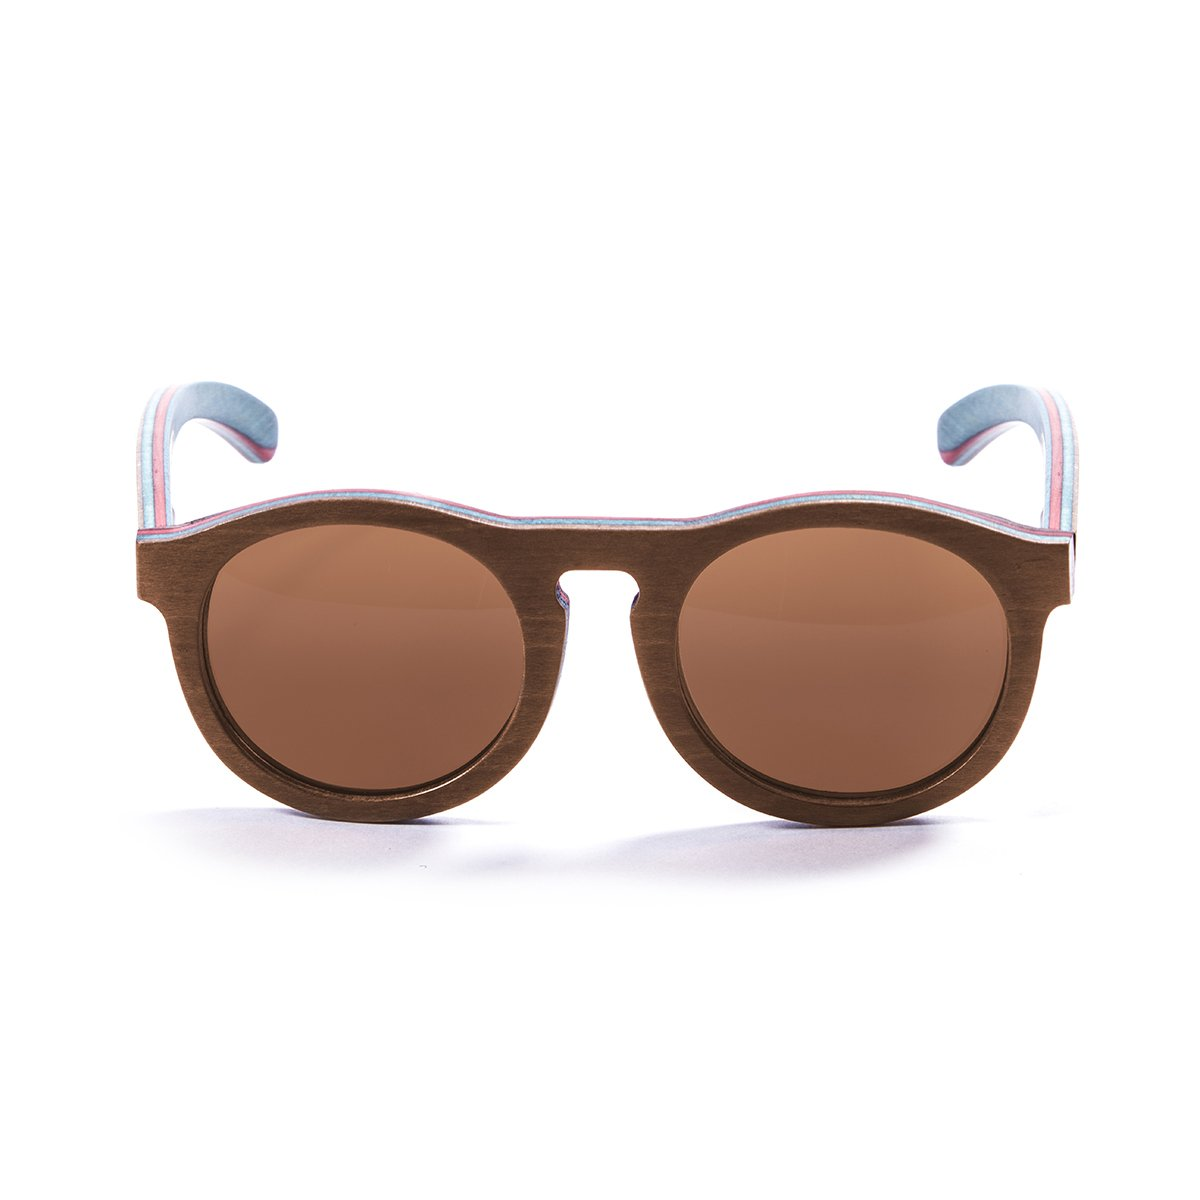 Ocean Bamboo Wood Sunglasses A Sight for Sport Eyes